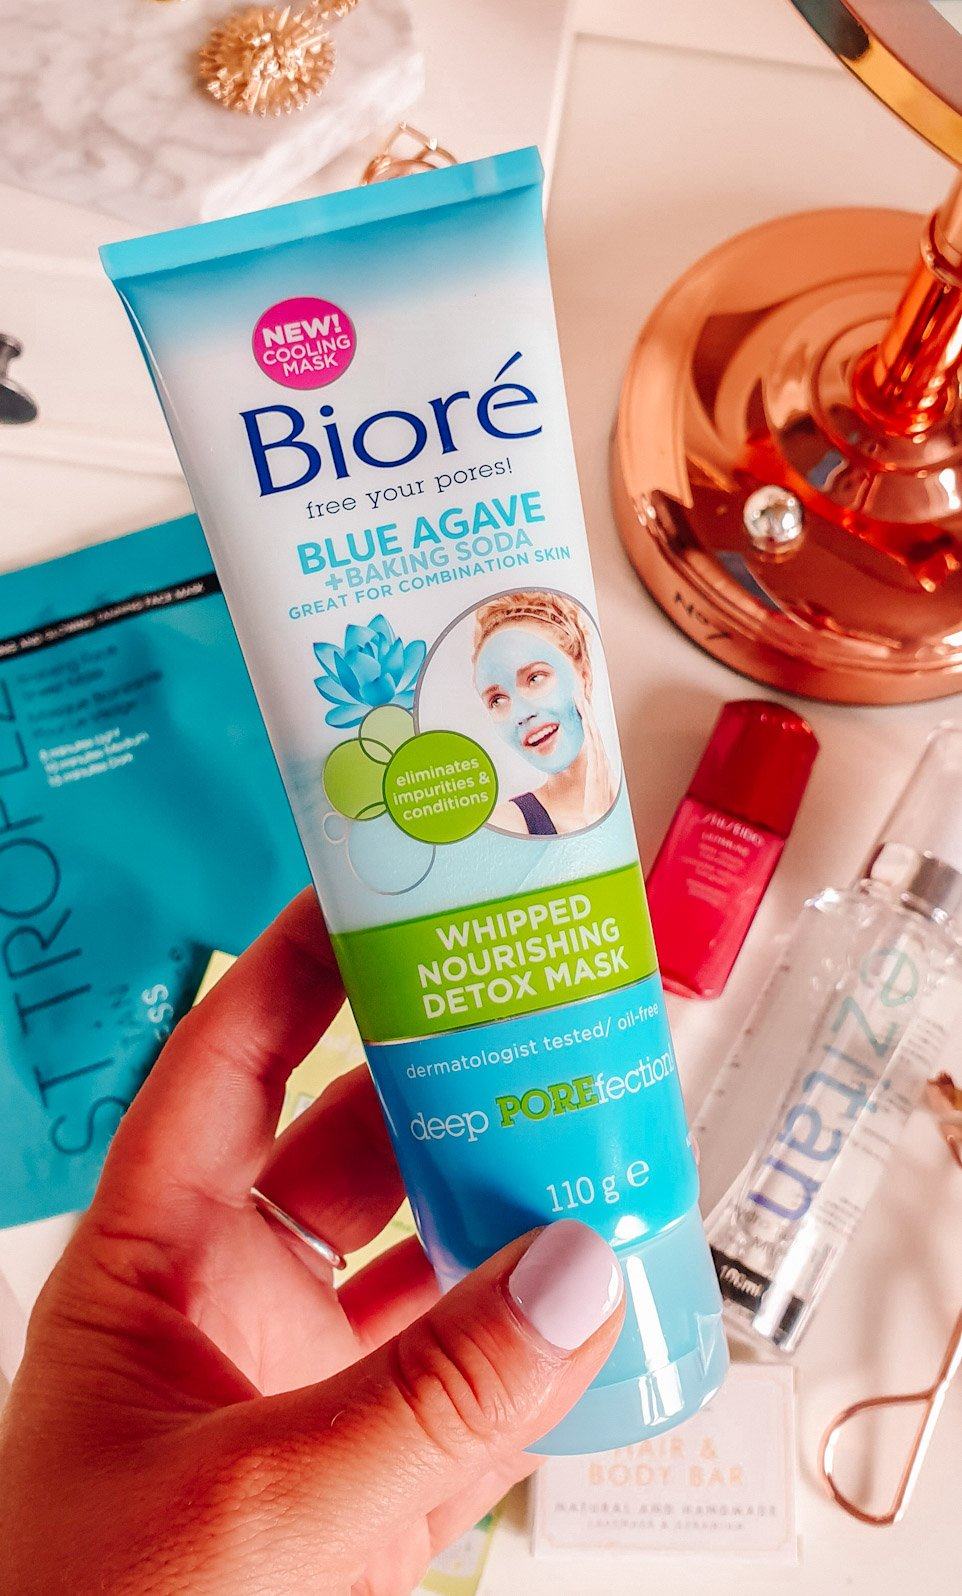 Biore Blue Agave & Baking Soda Whipped Nourishing Detox Mask